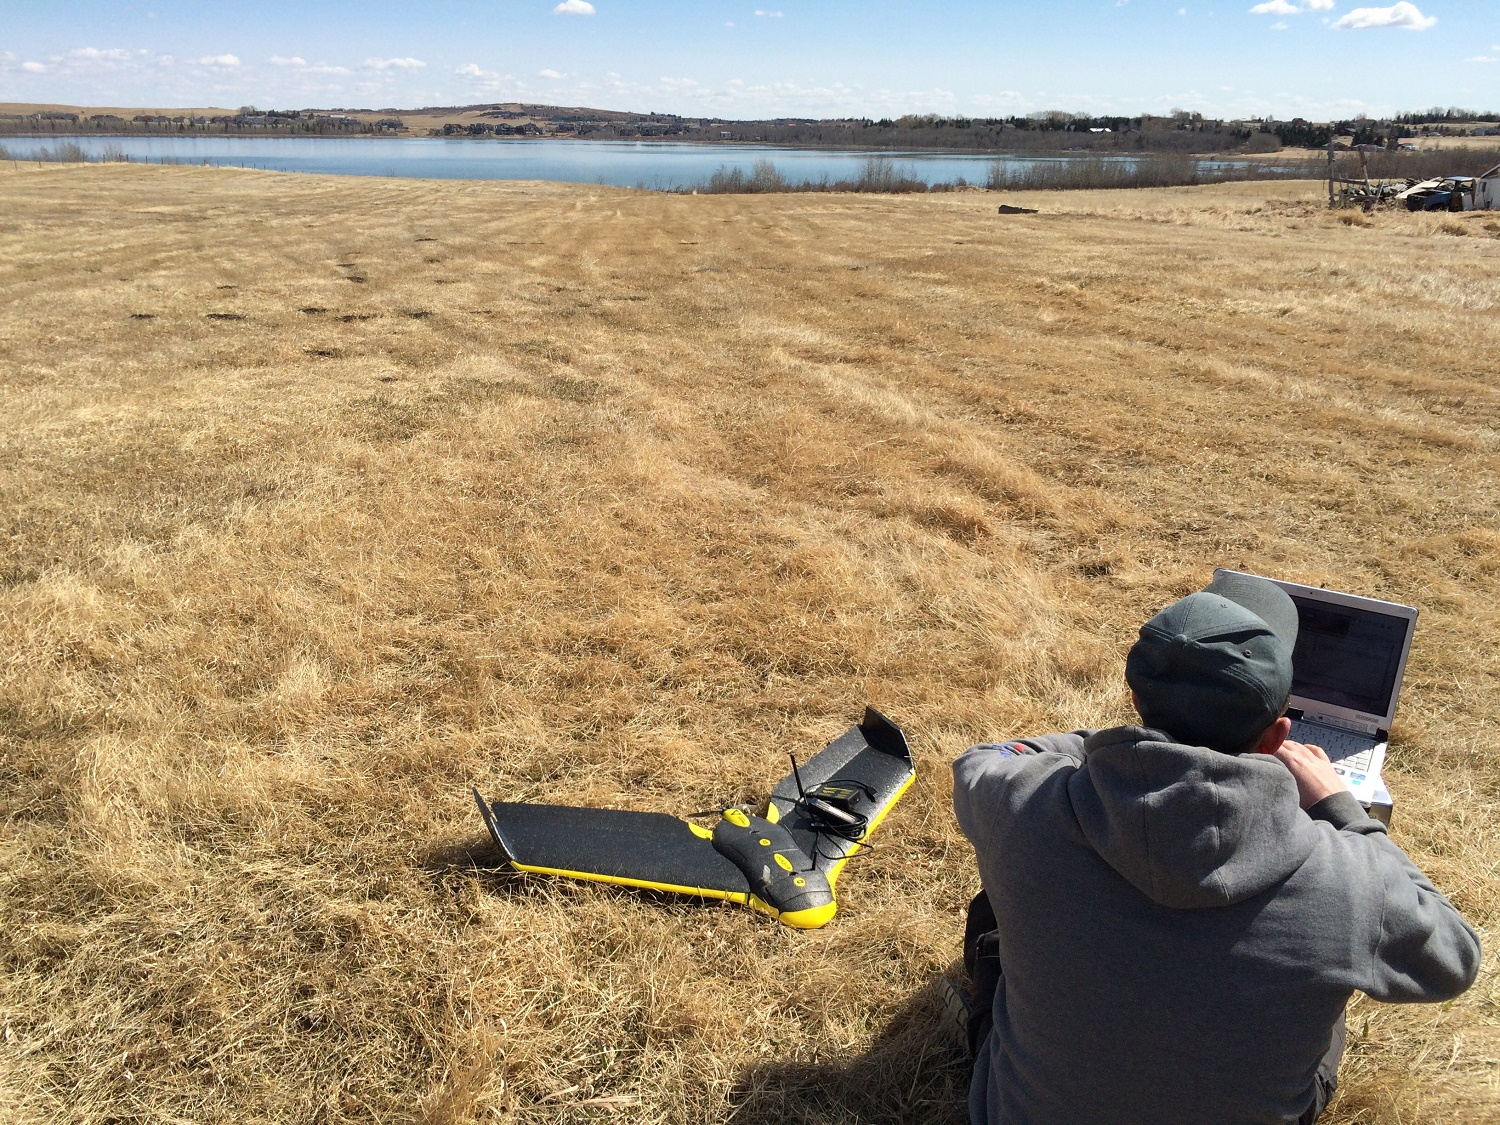 Land Surveying With Drones - Flight Planning